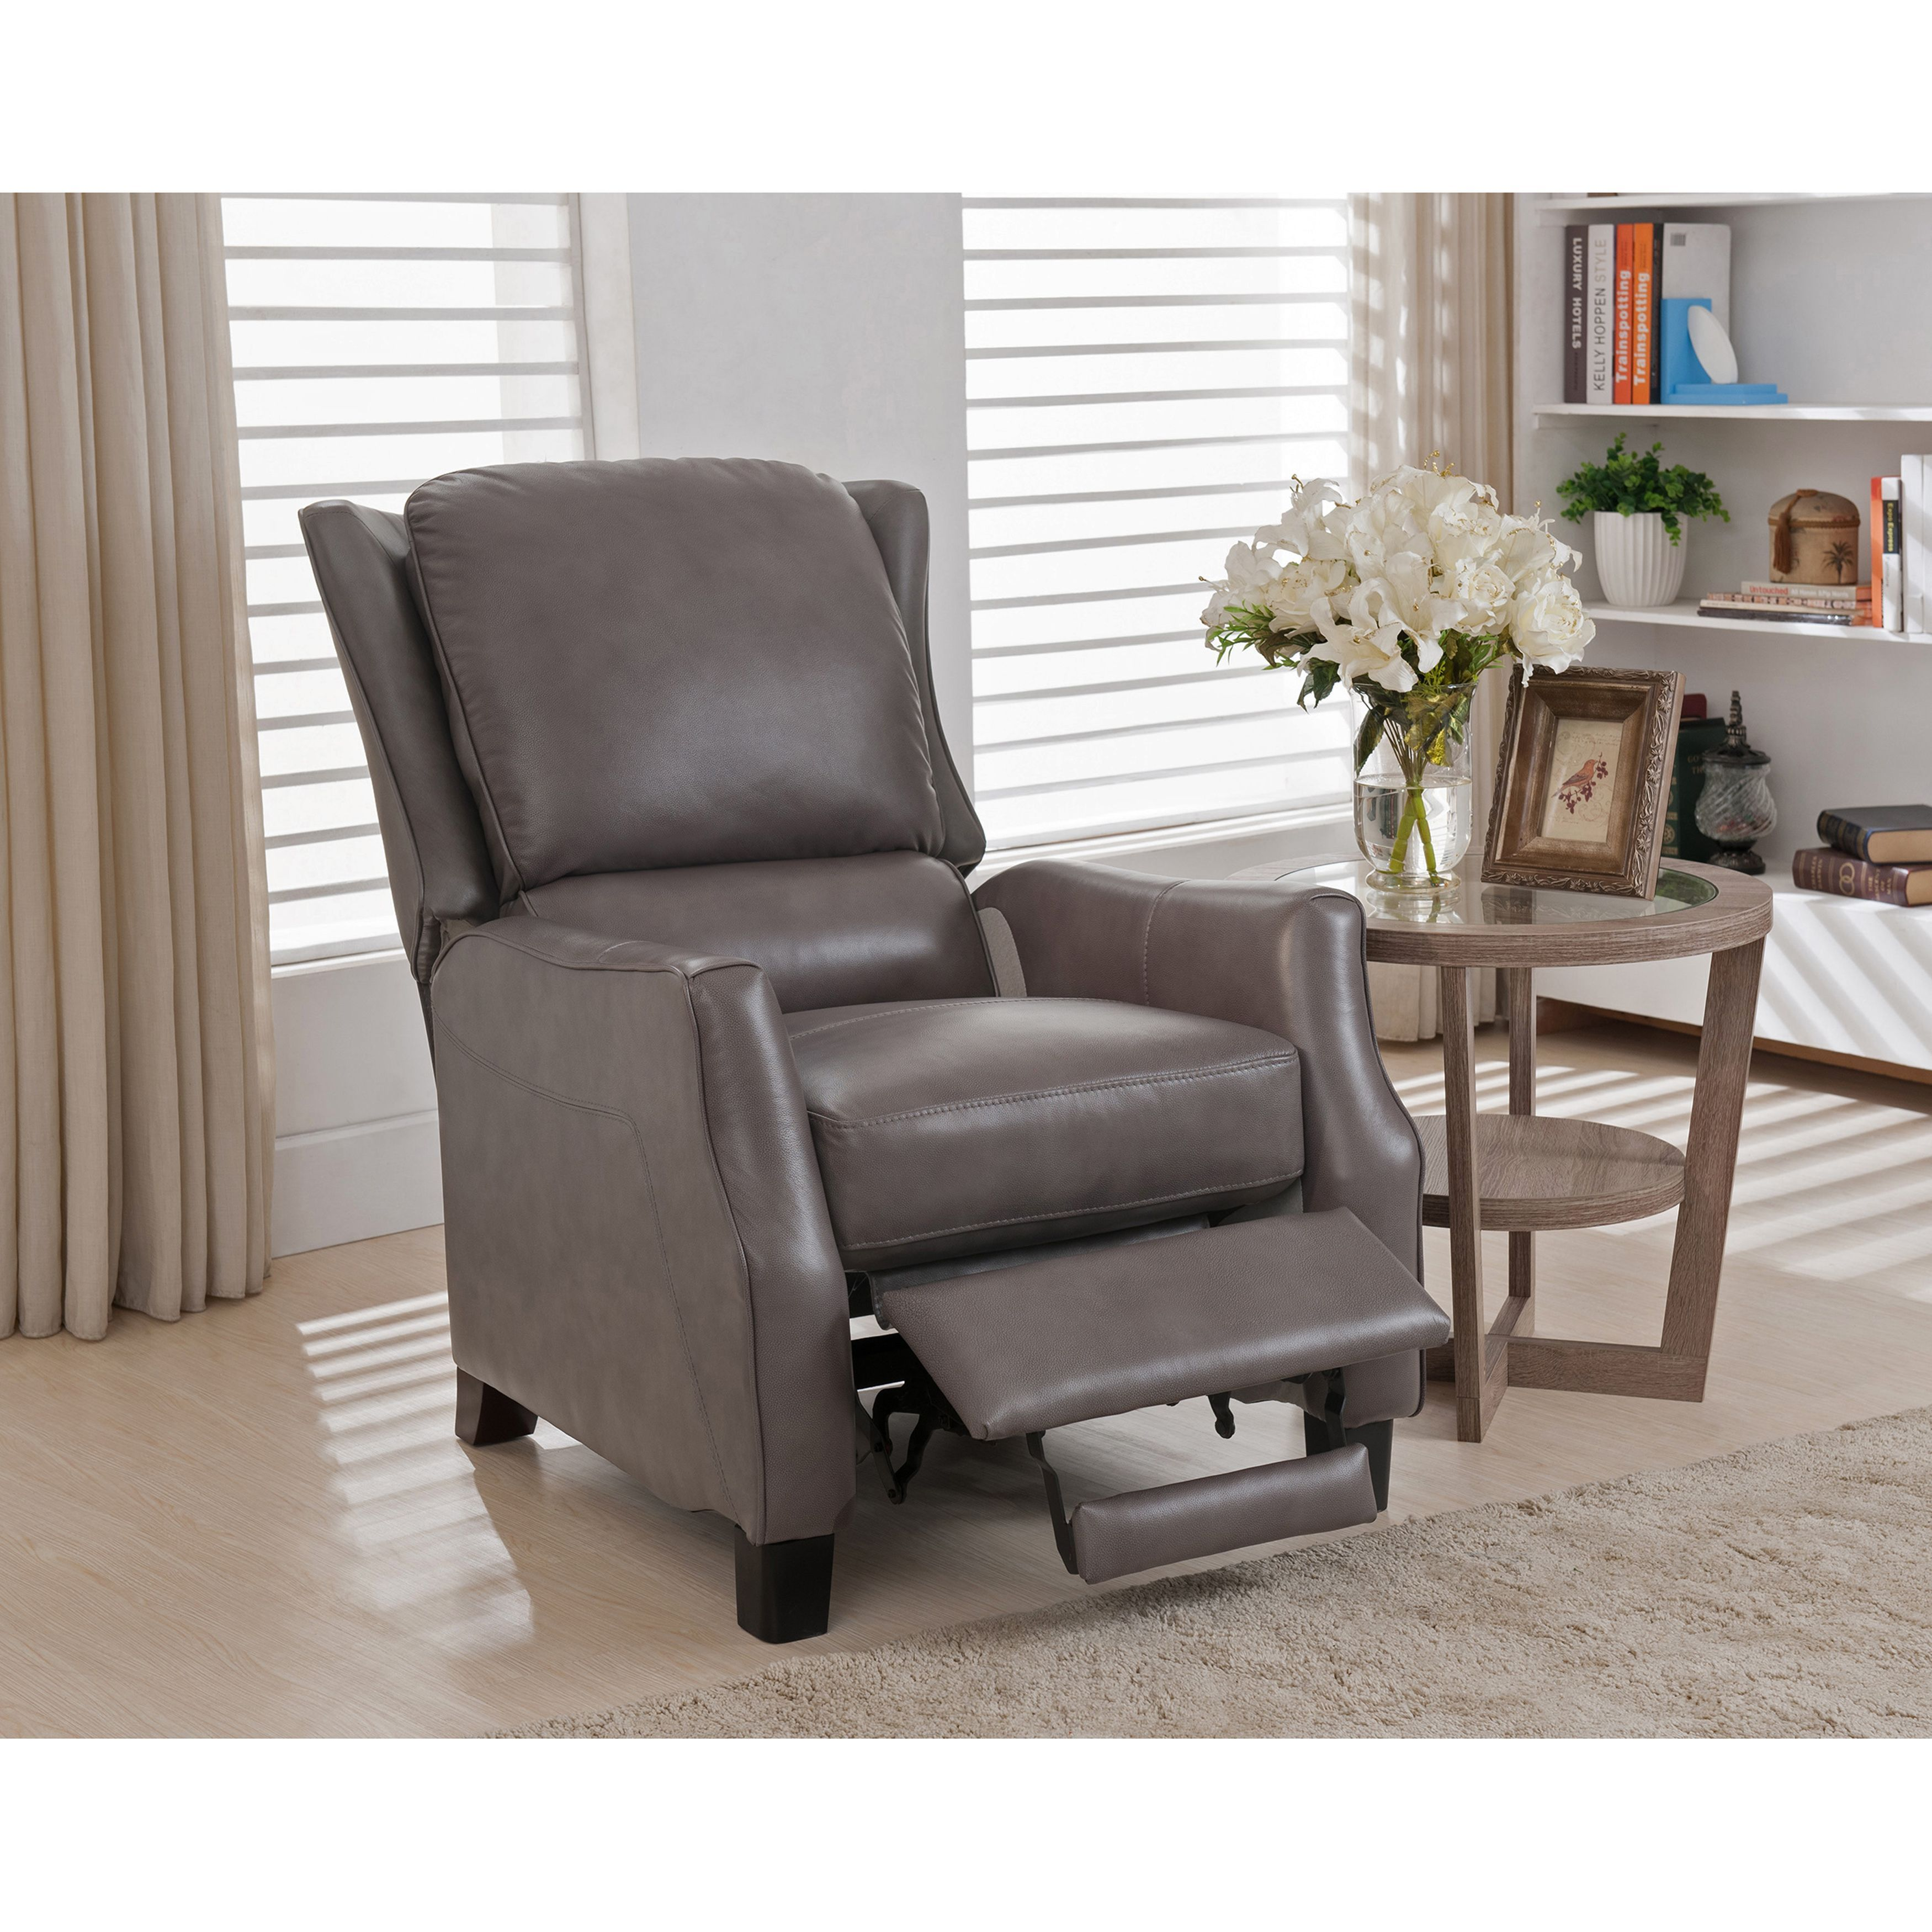 relax in comfort and style with this ultra premium leather reclining